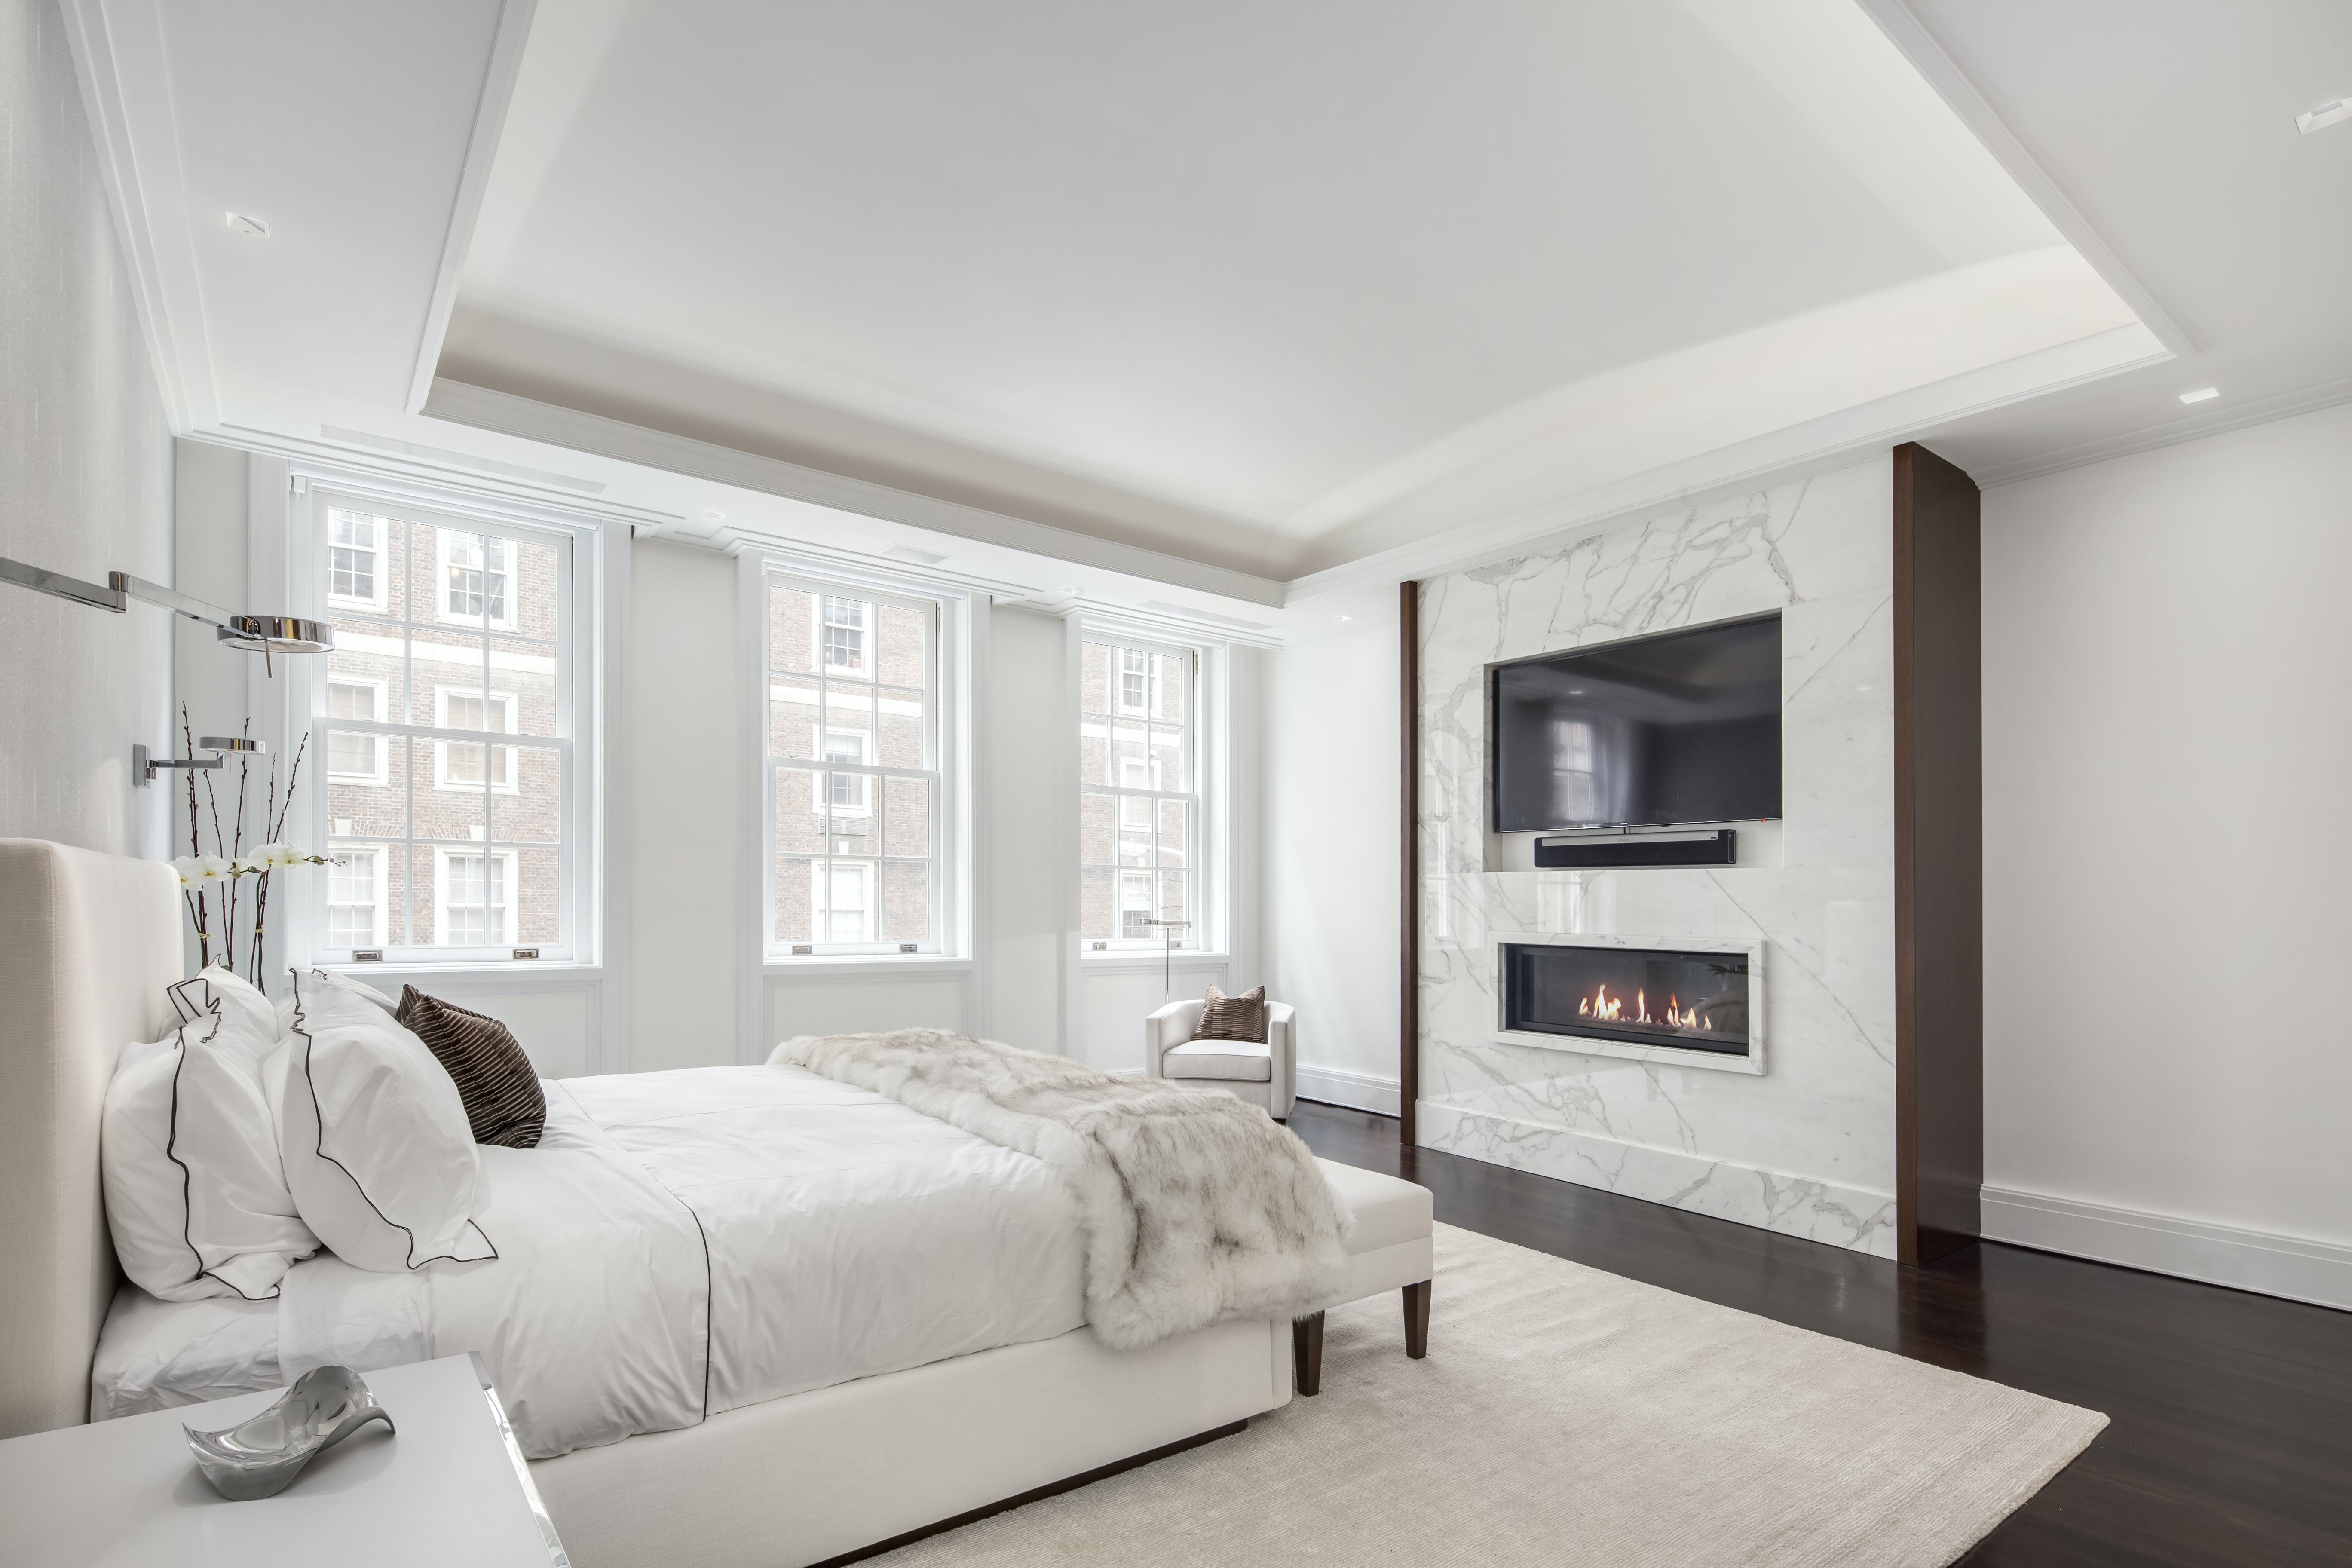 46 East 66th Street  - 43a88703-21d9-4d31-8b43-5bc860f07760 - New York City Townhouse Real Estate